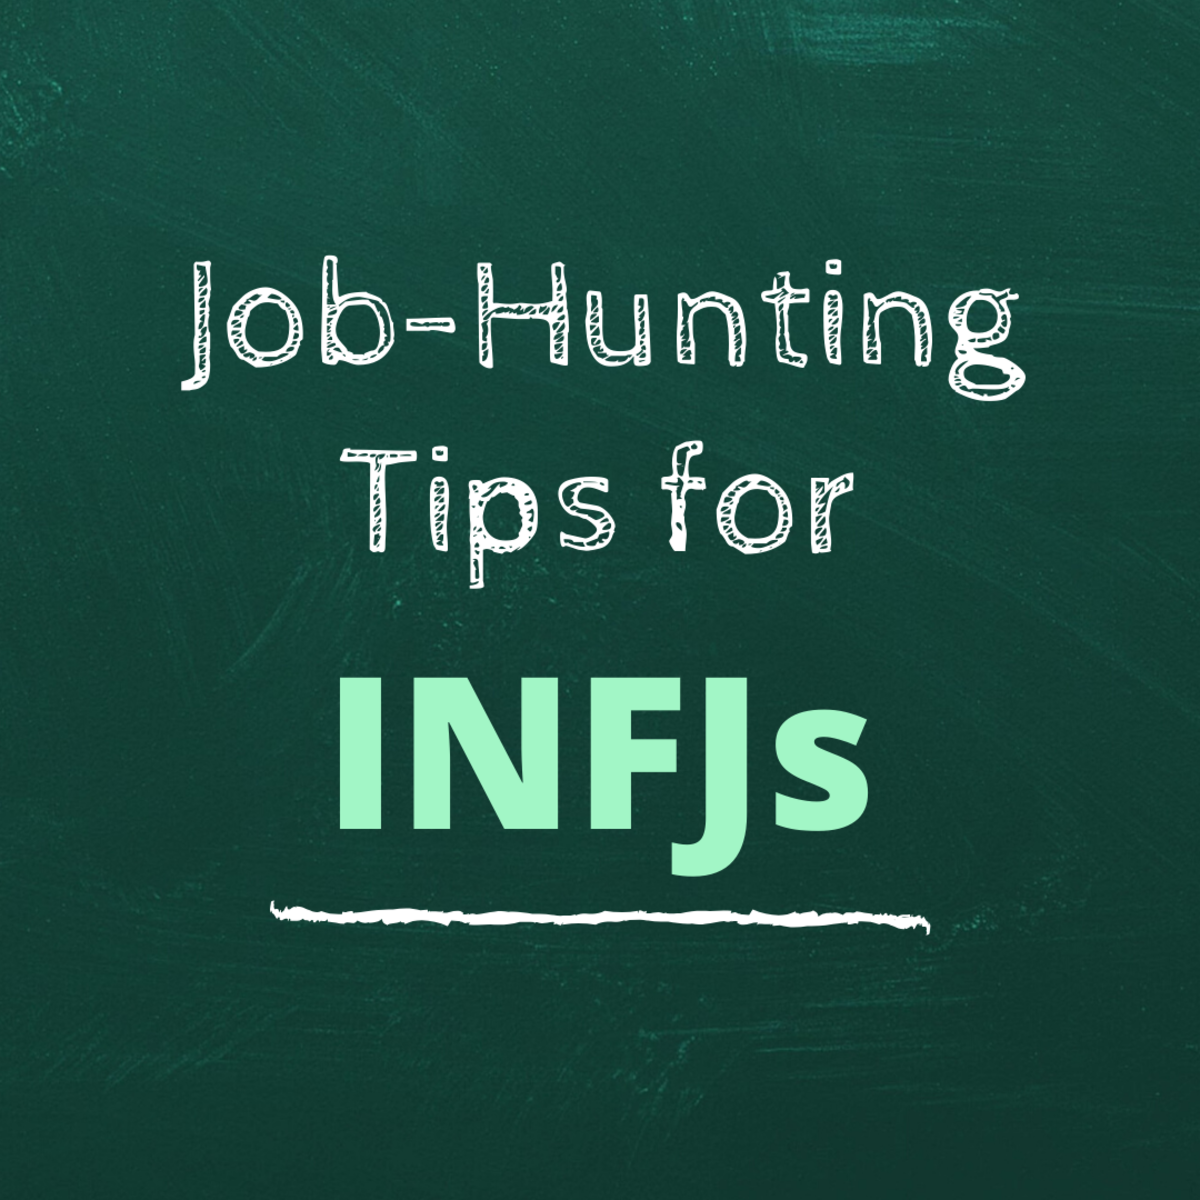 Discover more about the INFJ personality type and what sort of jobs suit their temperament.